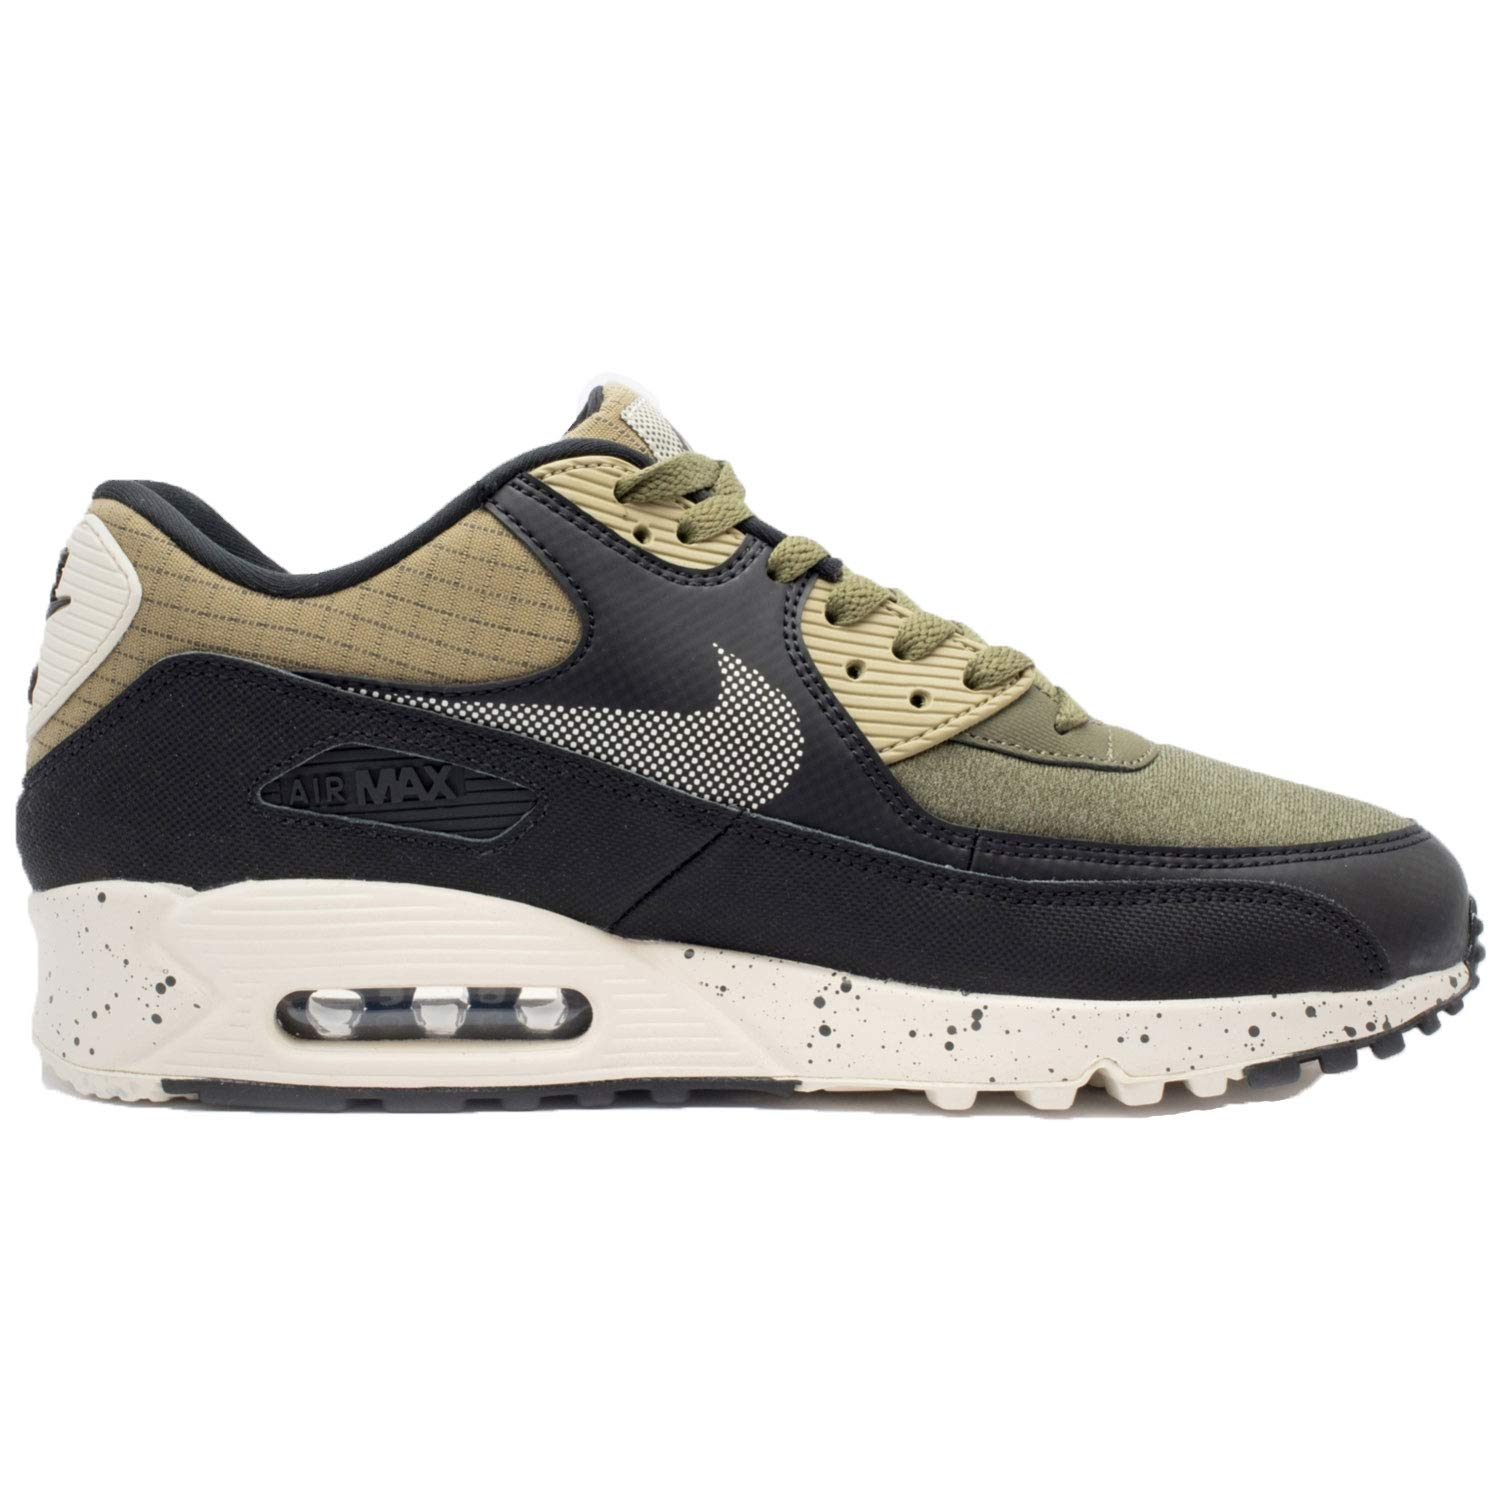 Galleon - NIKE Men s Air Max 90 Premium Neutral Olive 700155-203 ... d2f0d8baa